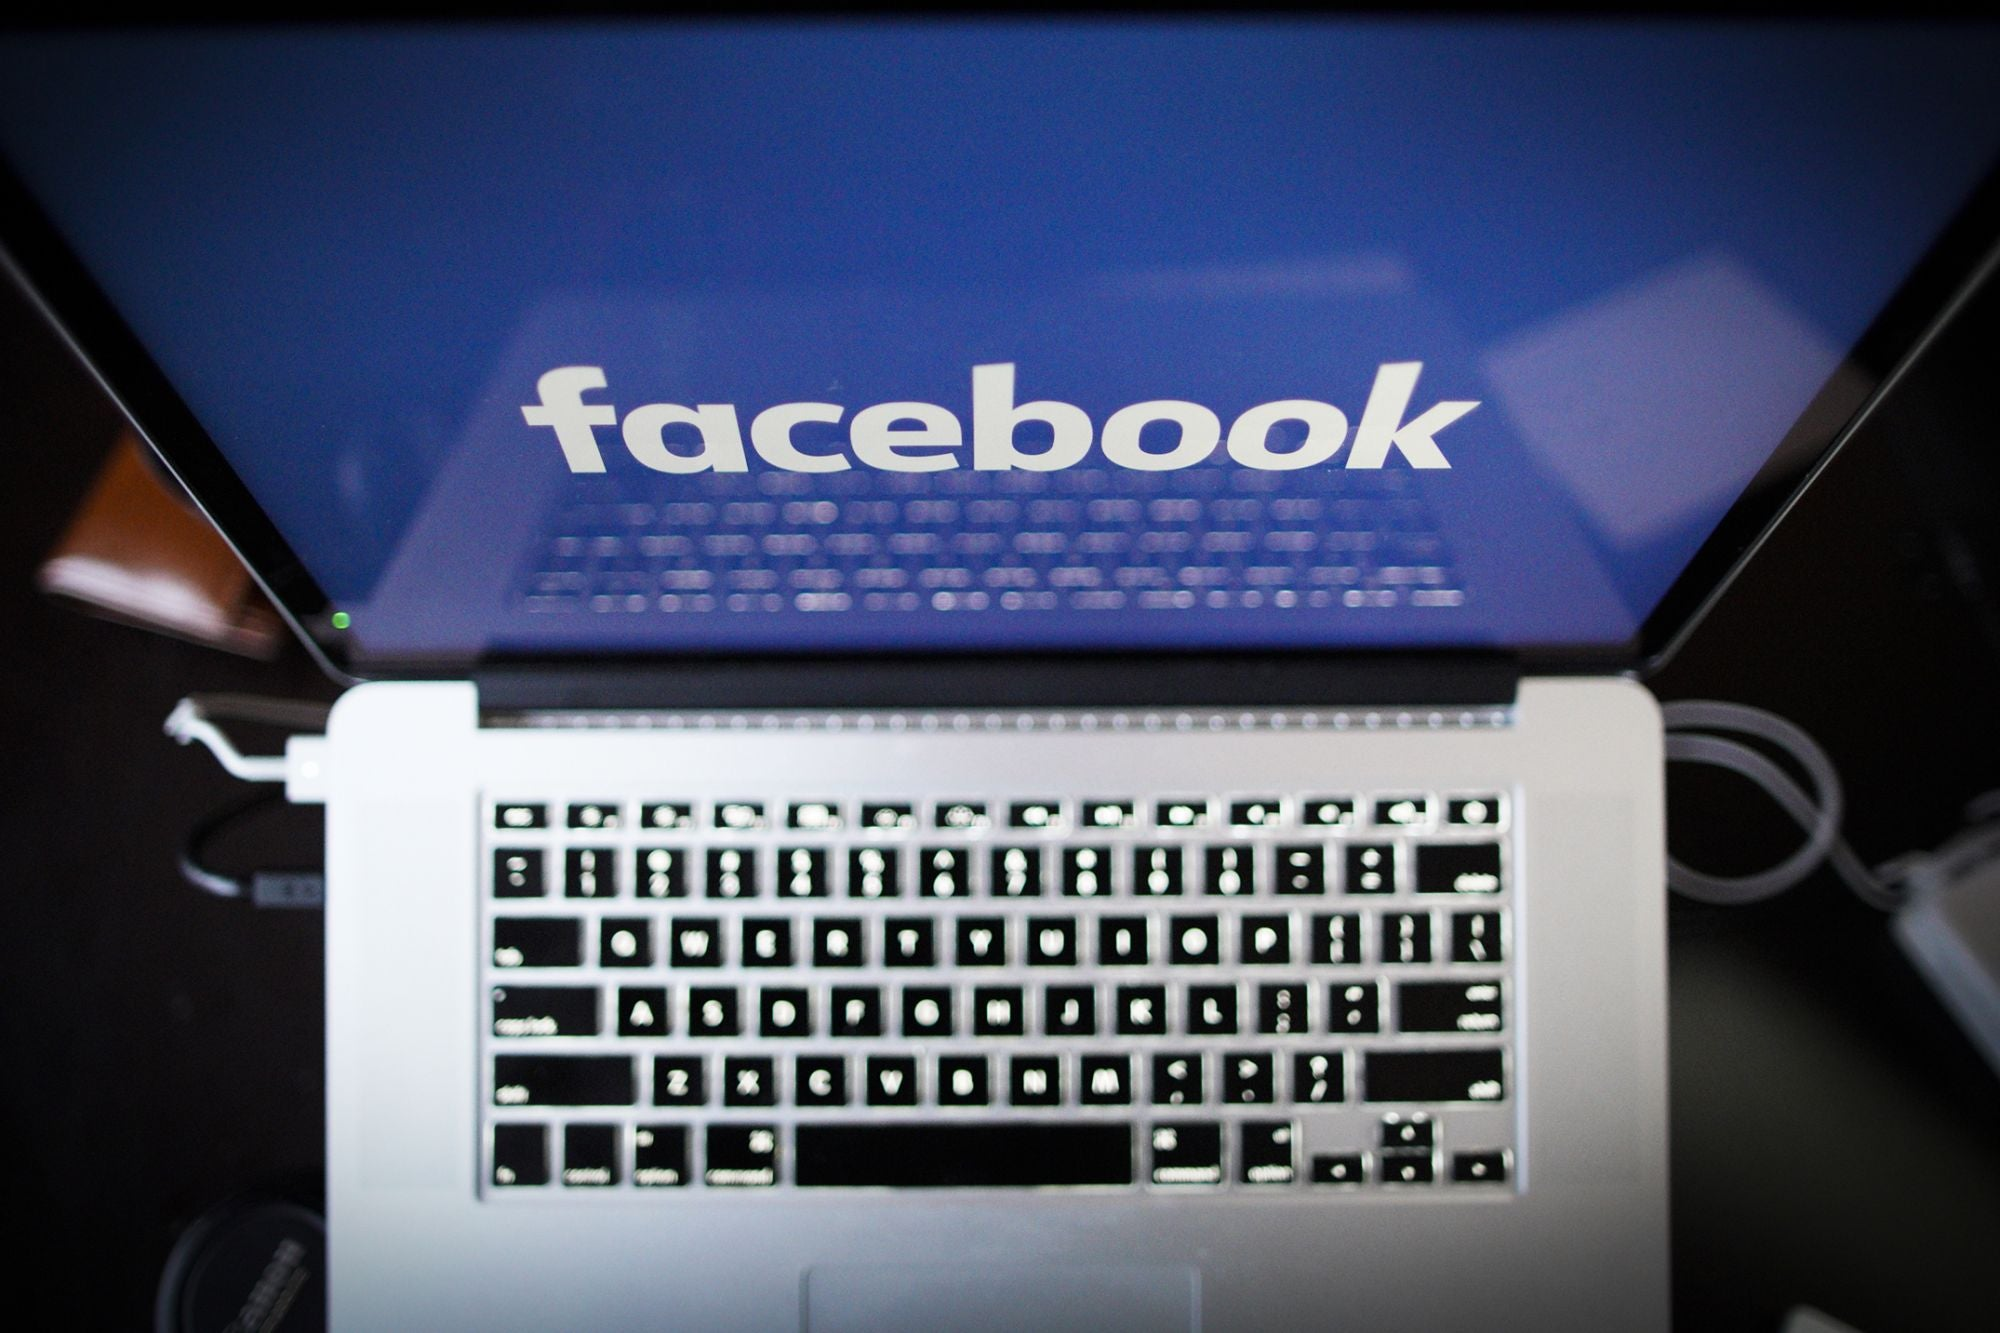 entrepreneur.com - Andrew Osterland - Stock Market Retreats Off Record Highs as Facebook Prepares to Report Financial Results